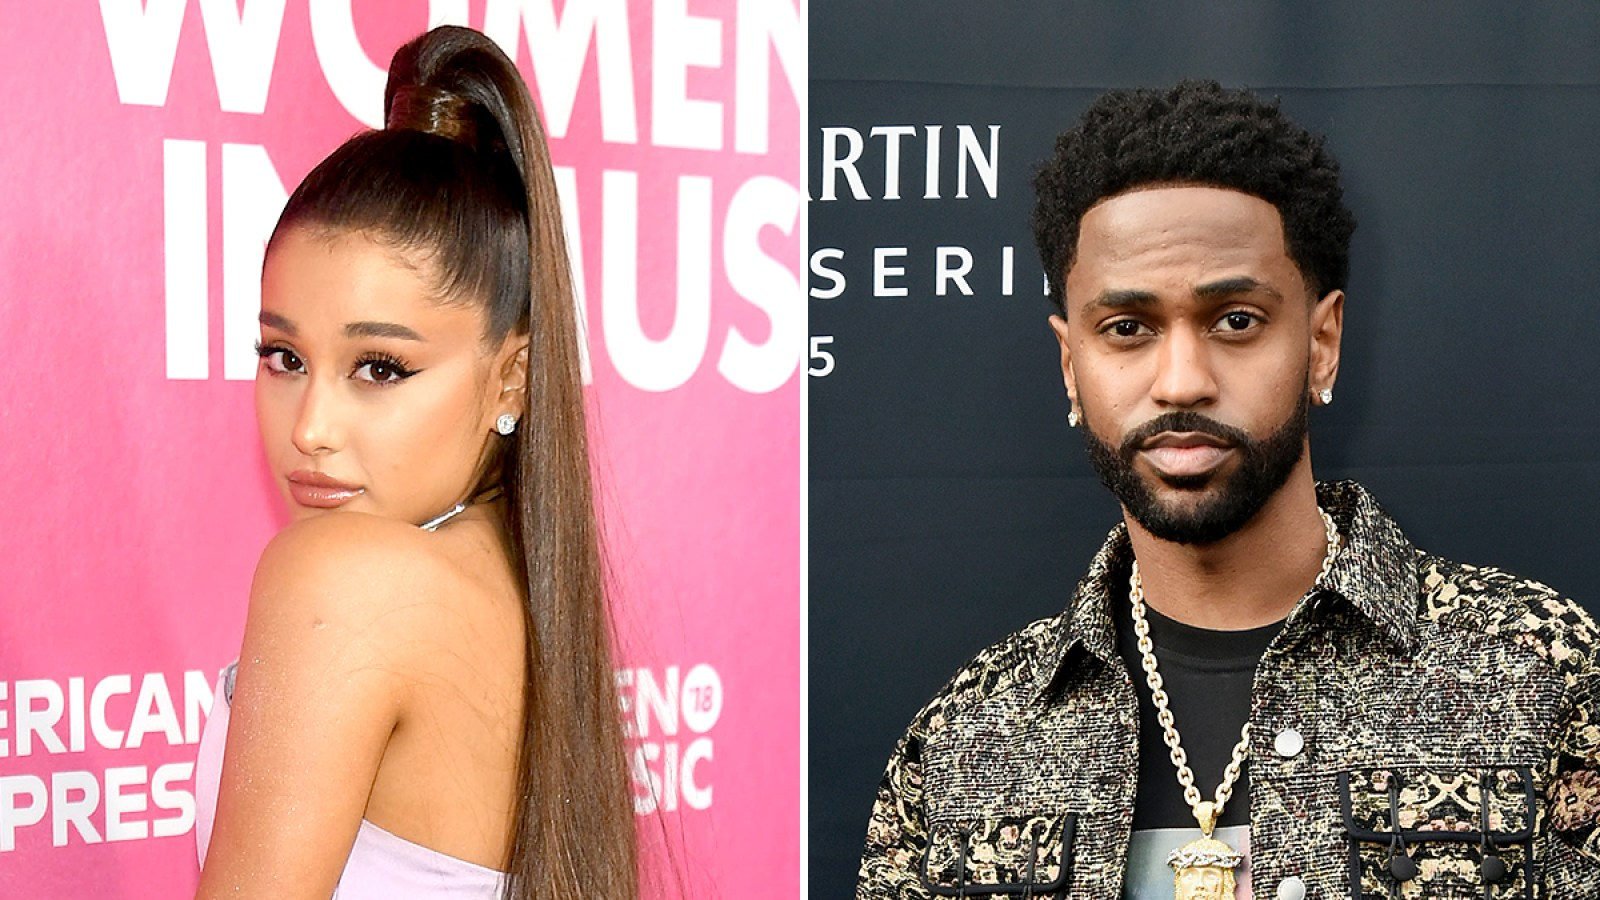 Ariana Grande Is Not Getting Back Together With Ex Big Sean